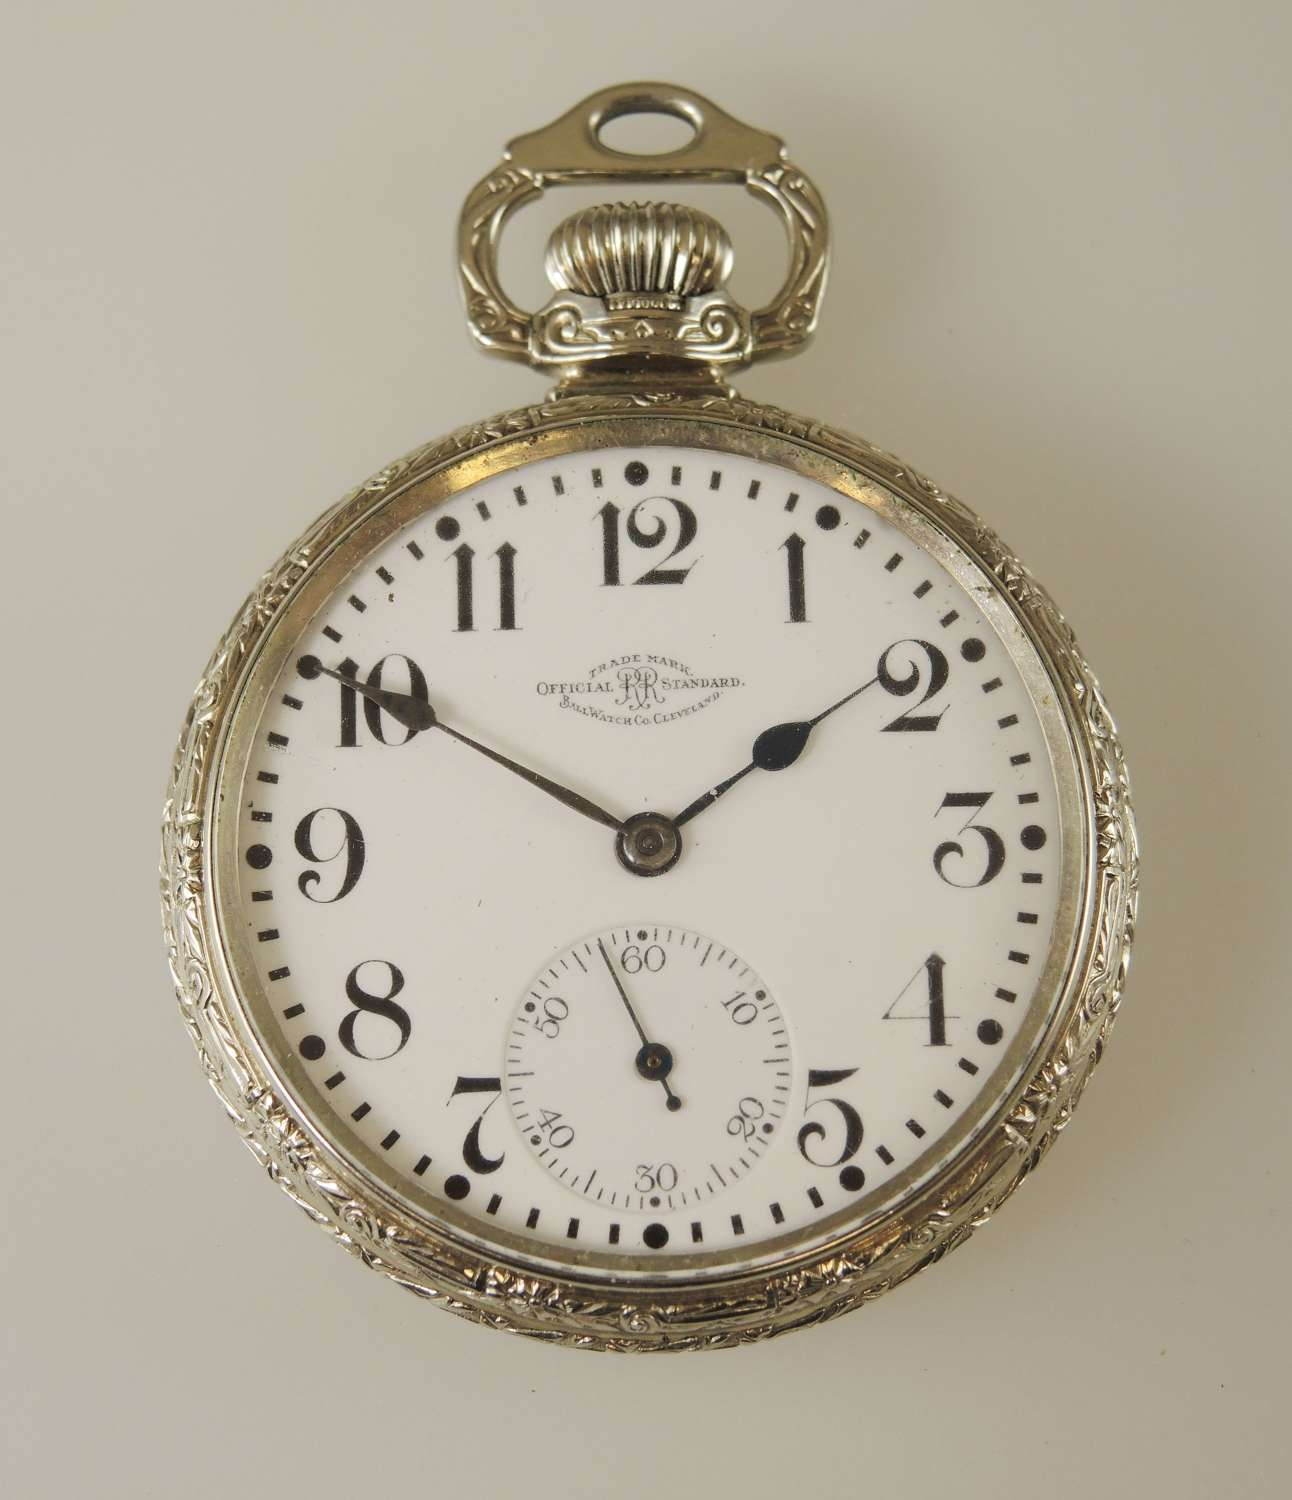 16 Size 23 Jewel 999N Ball Hamilton Pocket Watch c1915